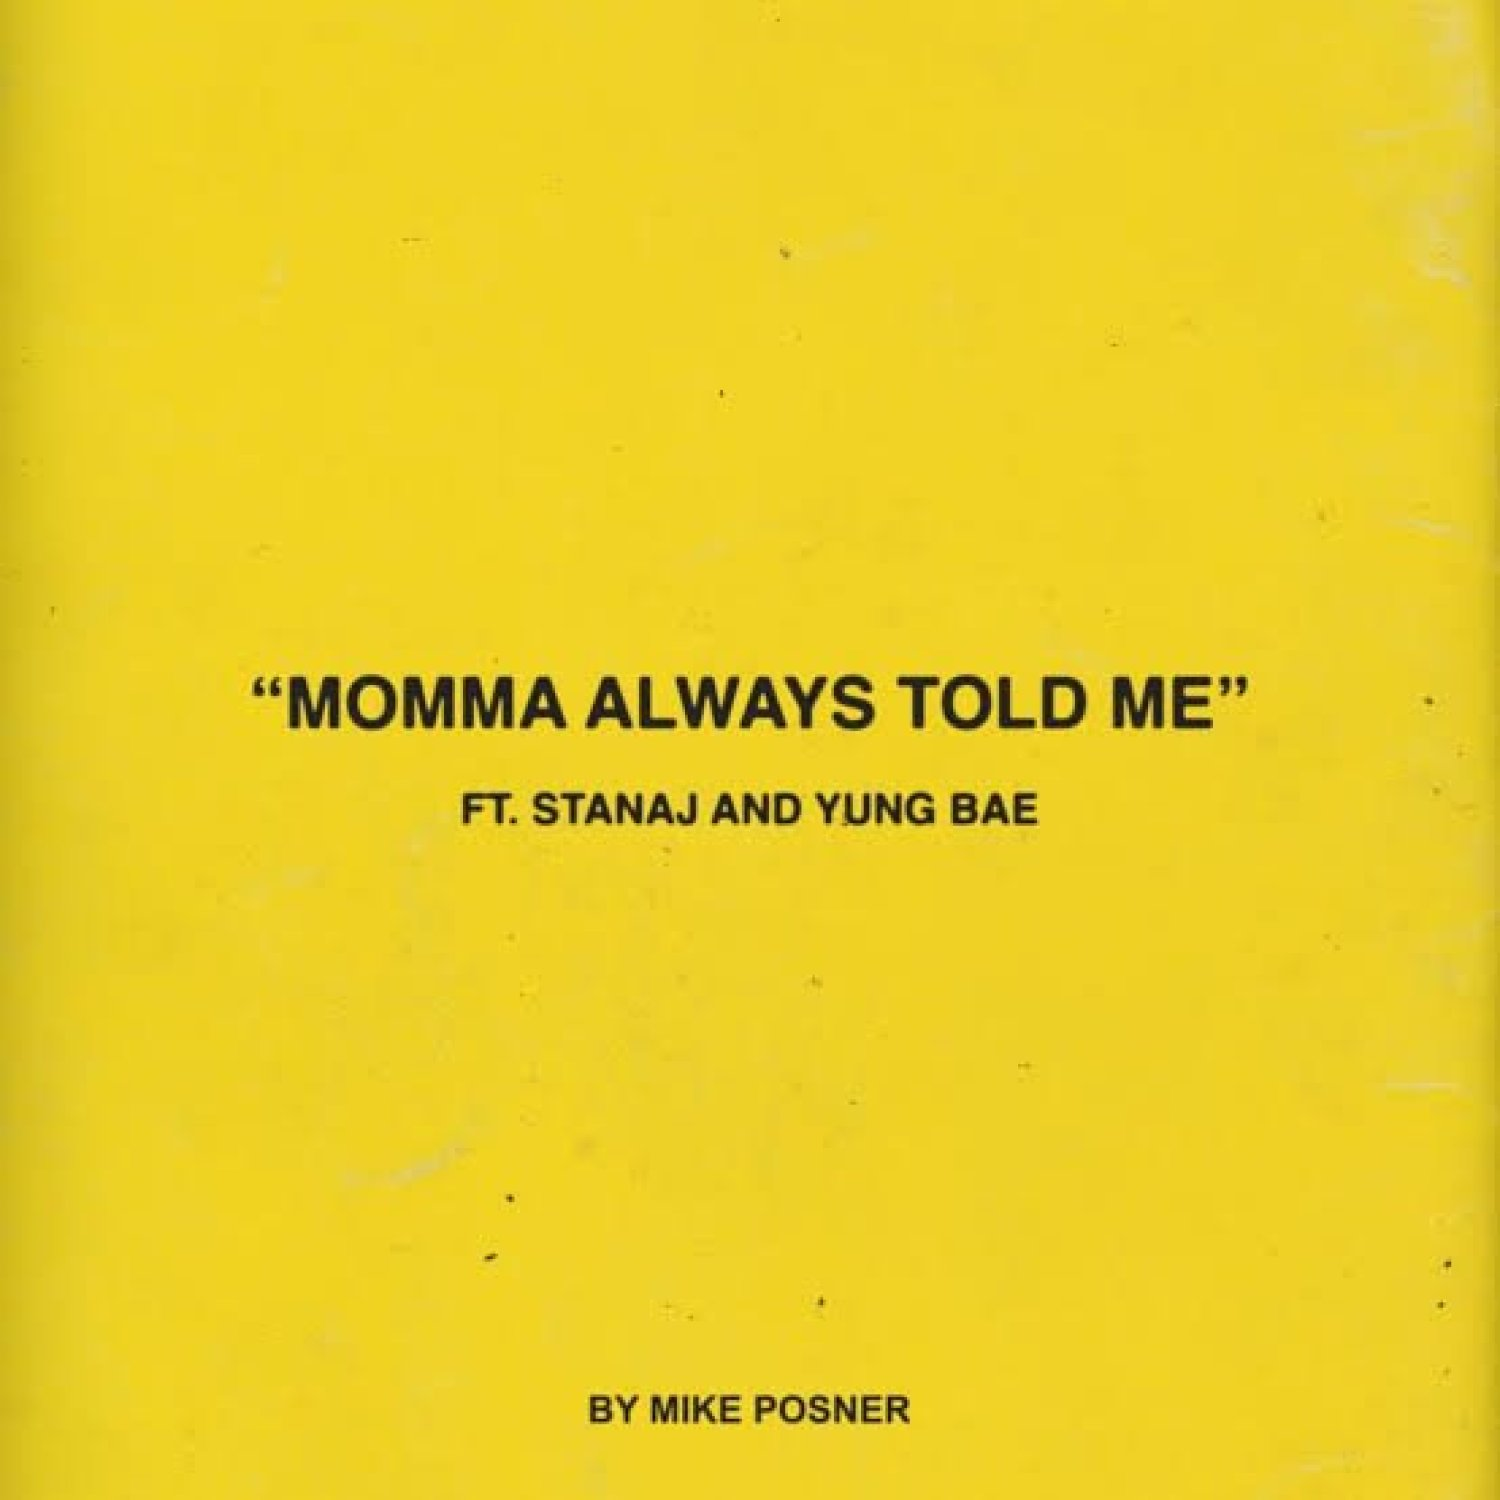 DOWNLOAD MP3: Mike Posner – Momma Always Told Me Ft. Stanaj & Yung Bae (Free MP3) AUDIO 320kbps